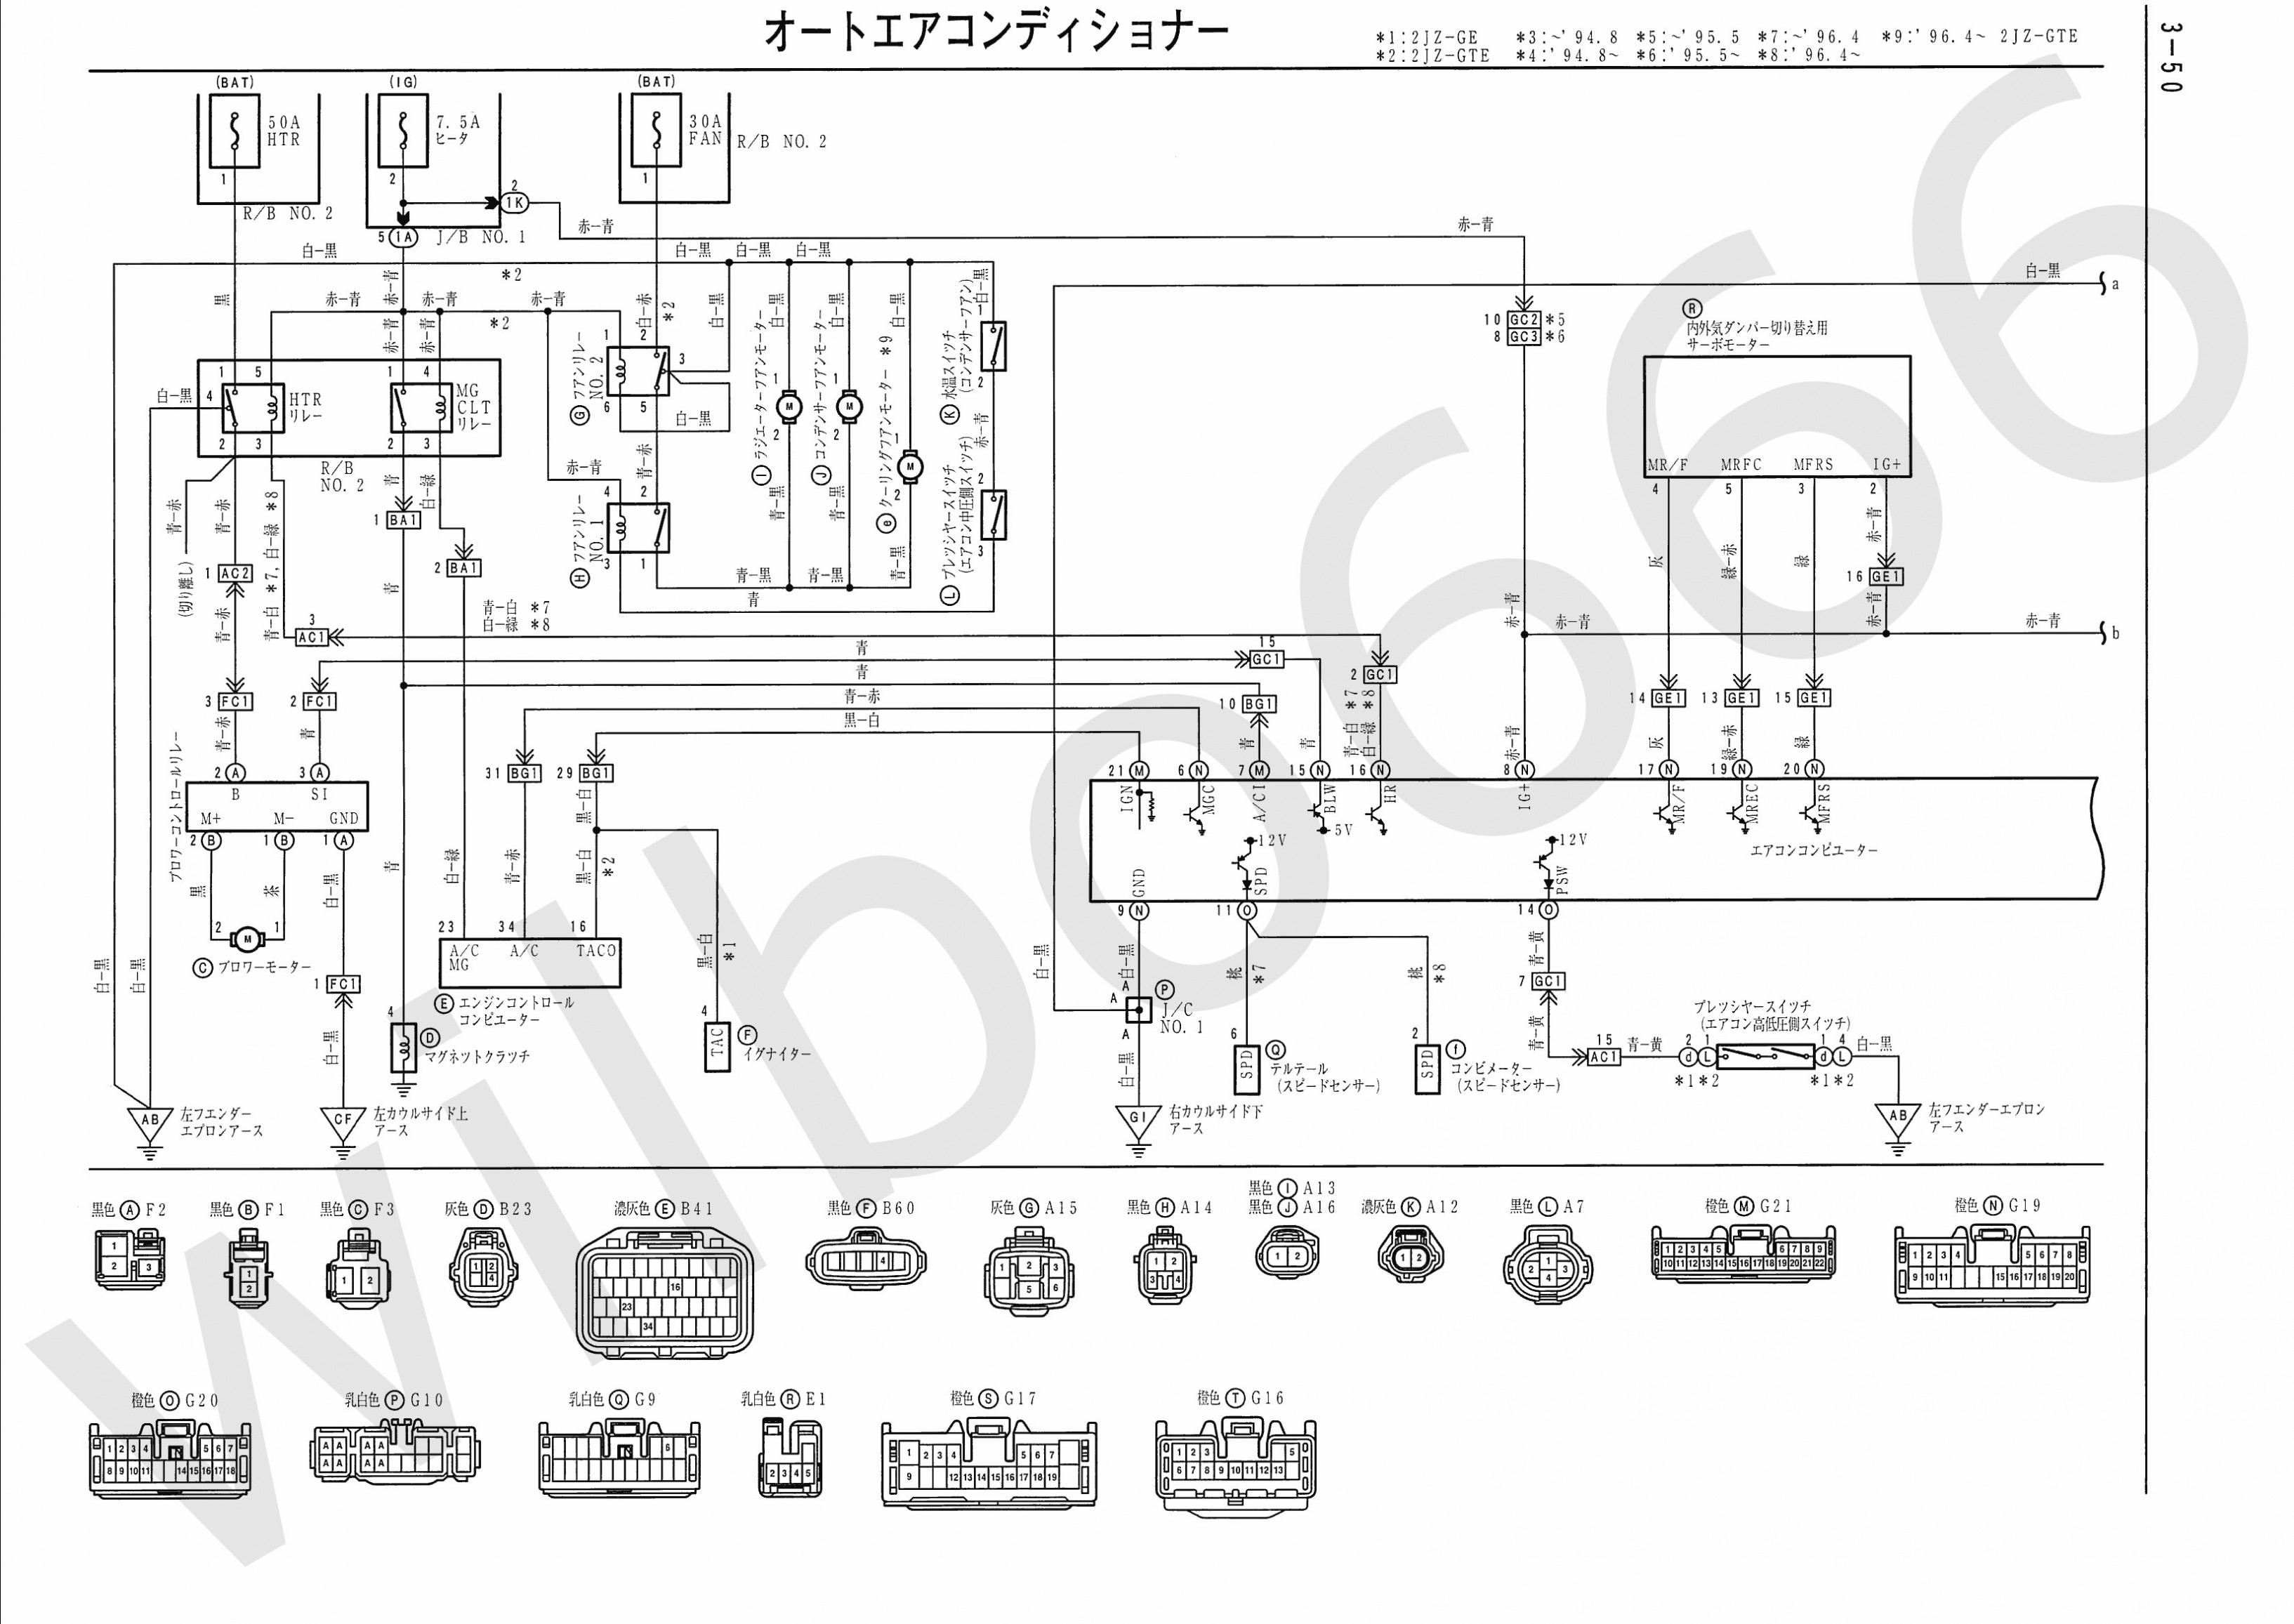 1999 Honda Accord V6 Engine Diagram 1998 Civic Engine Diagram Layout Wiring Diagrams • Of 1999 Honda Accord V6 Engine Diagram 1997 Accord Fuse Diagram Layout Wiring Diagrams •